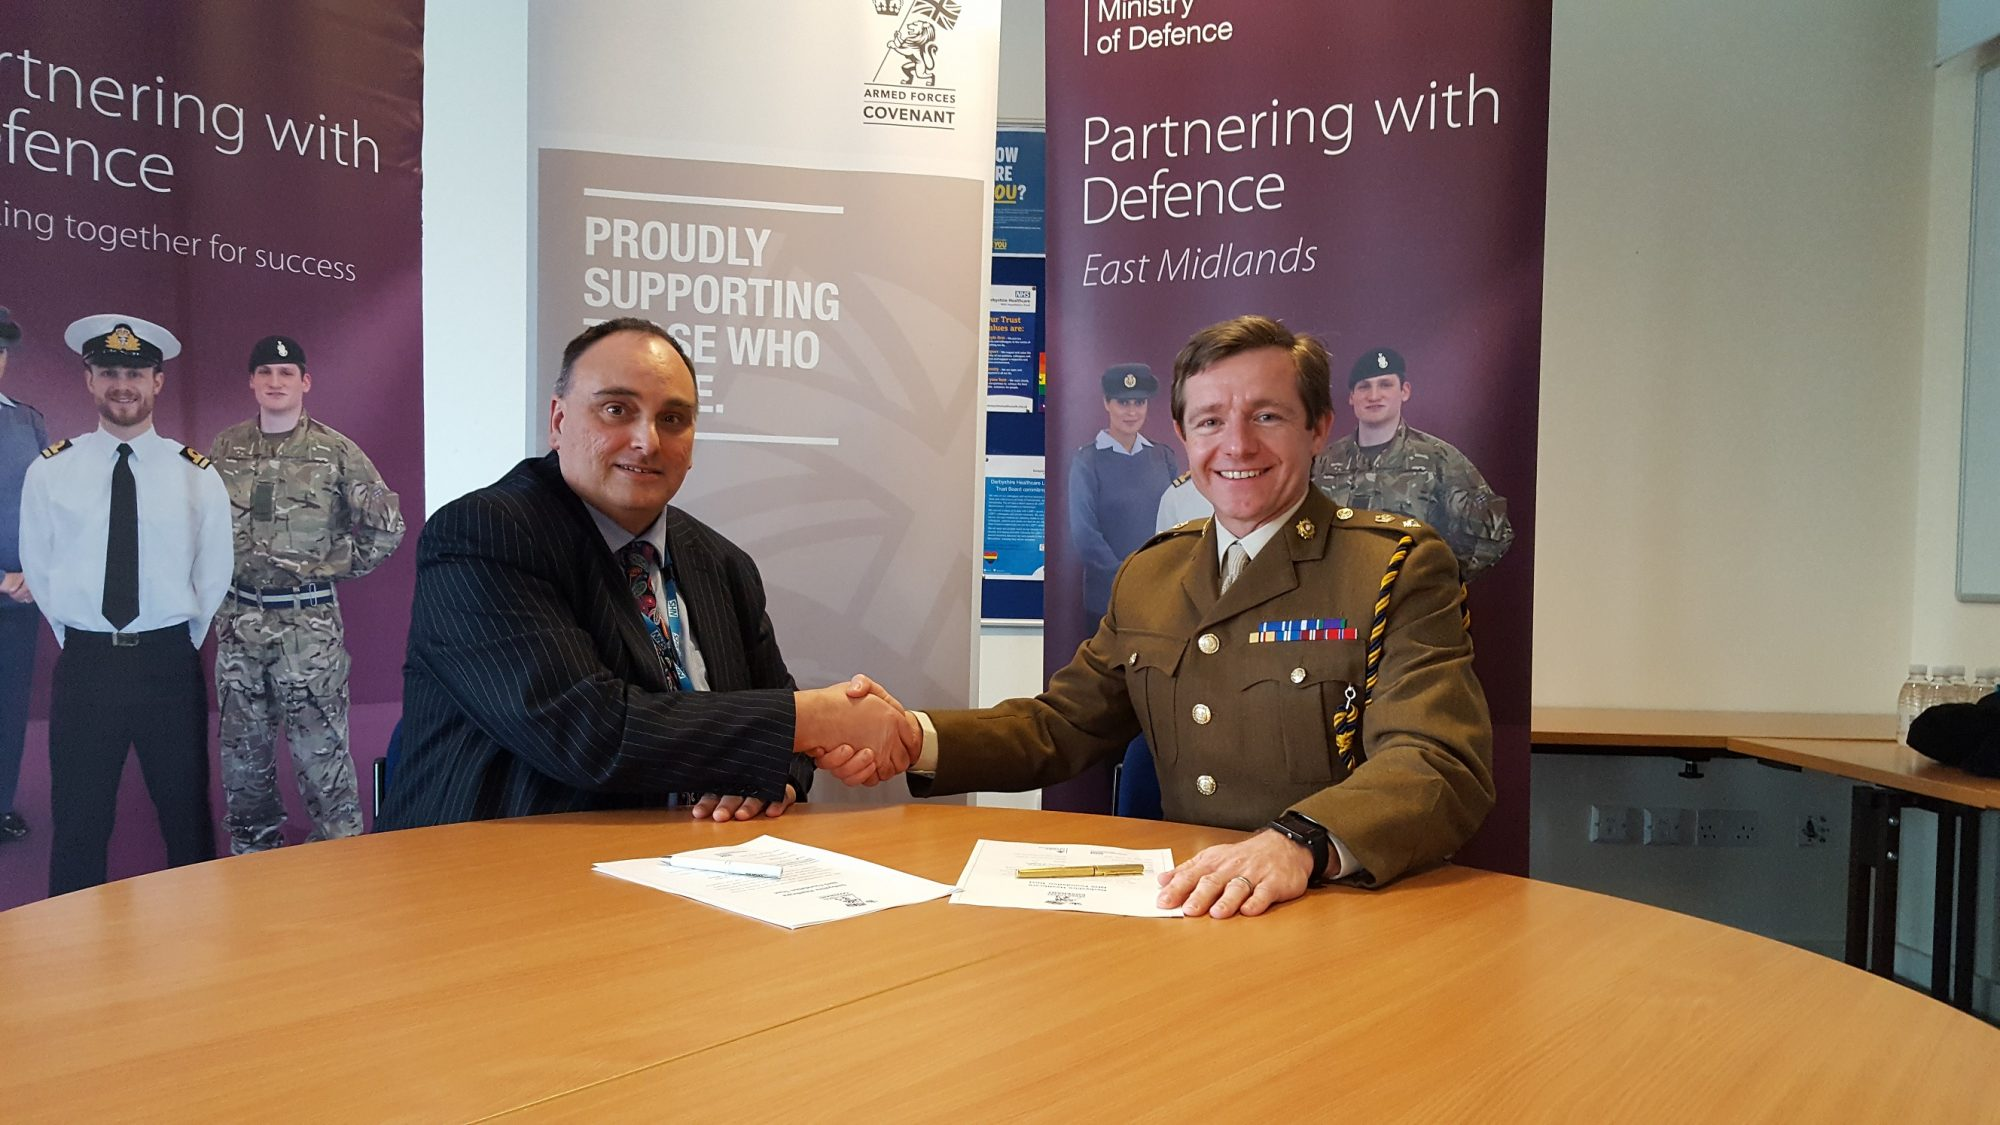 Derbyshire Healthcare signs Armed Forces Covenant